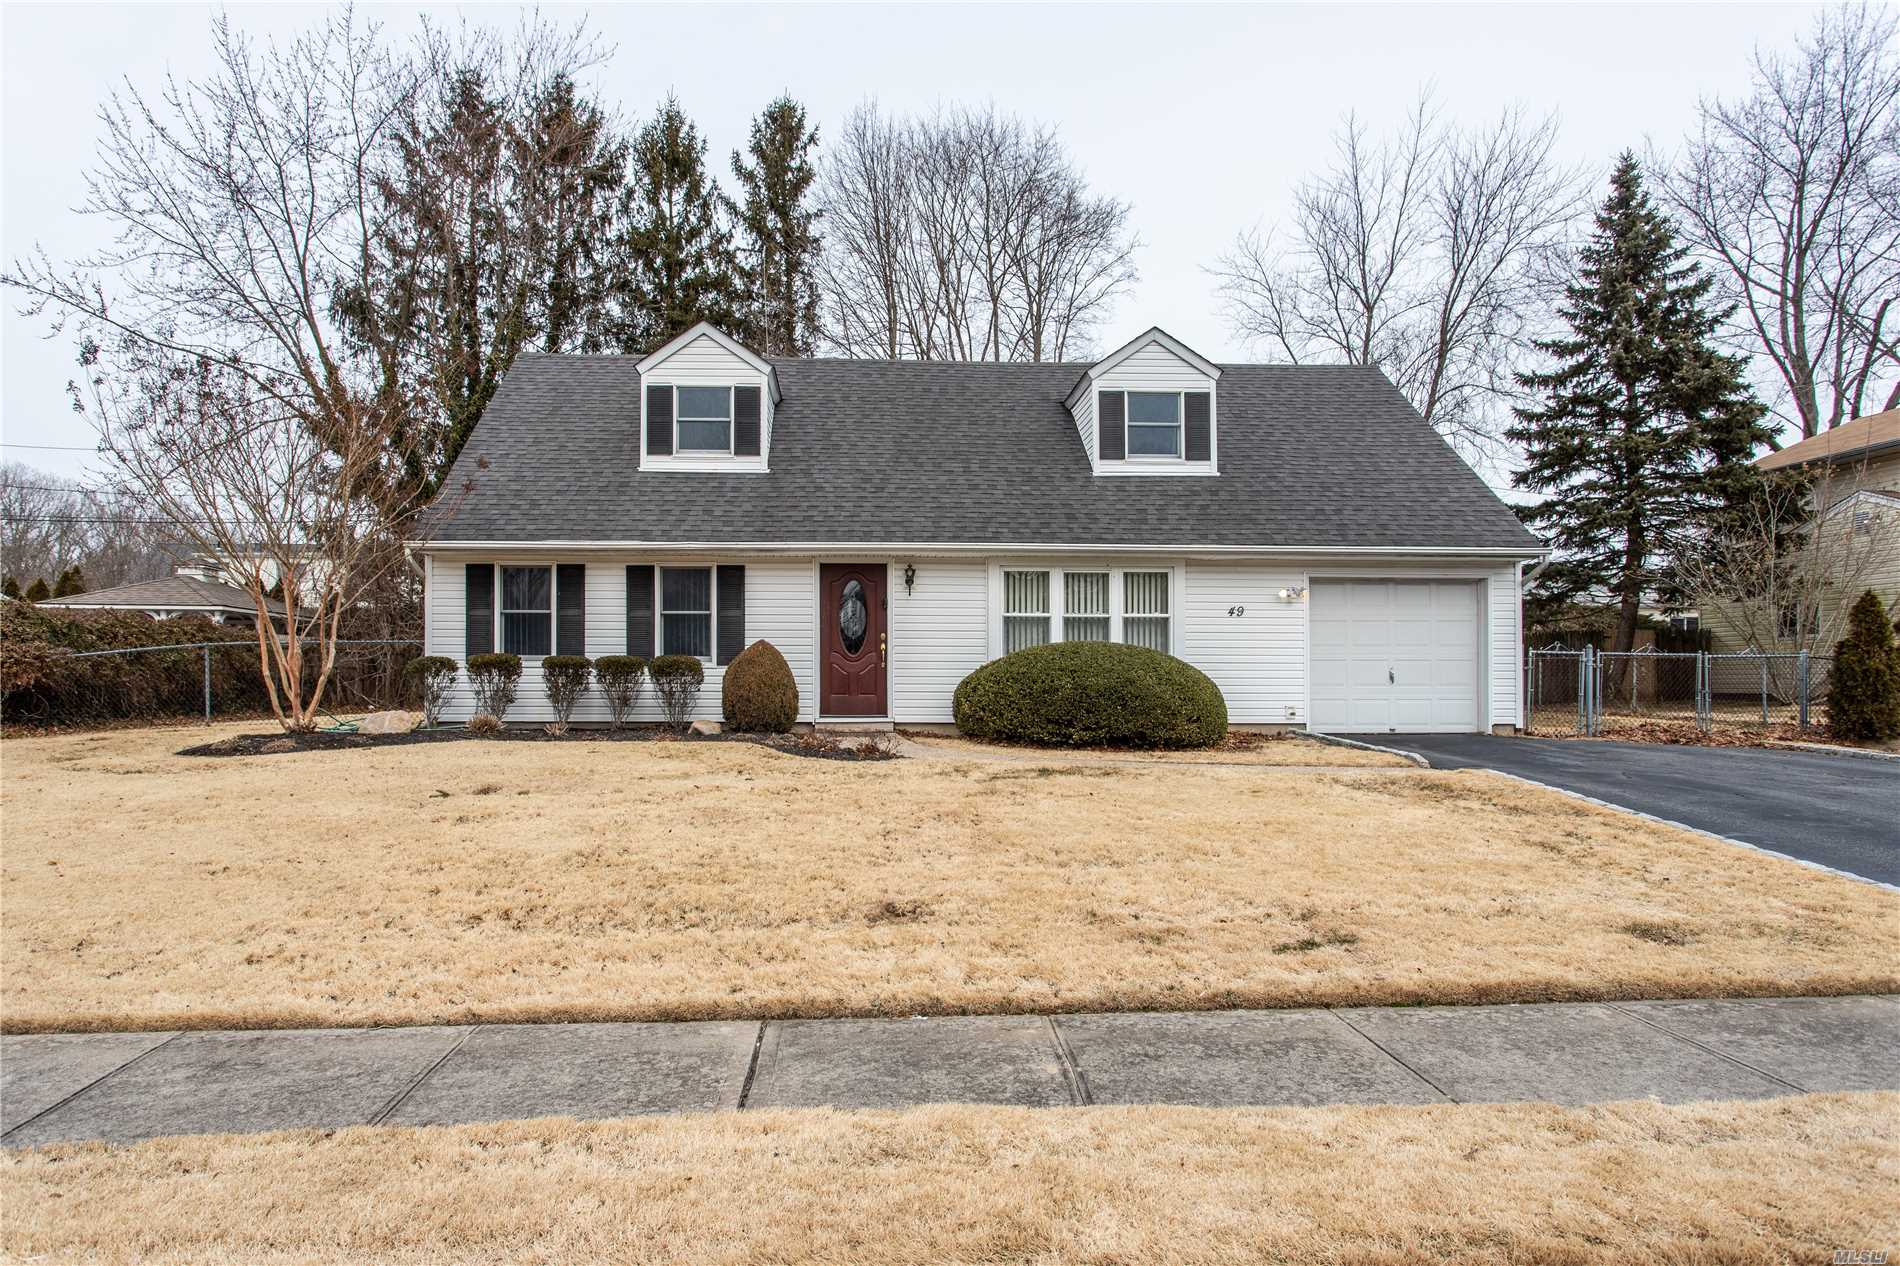 Look No Further! Meticulously Maintained And Updated Expanded Cape In The Famed Birchwood Section. Spacious Rooms Include Living Room, Formal Dining Room, Den, 4 Bedrooms, 2 Updated Baths, Updated Kitchen, Siding, Roof,  Windows And Heater. Curb Lined End Of Street Location. Comsewogue Schools - Won't Last!